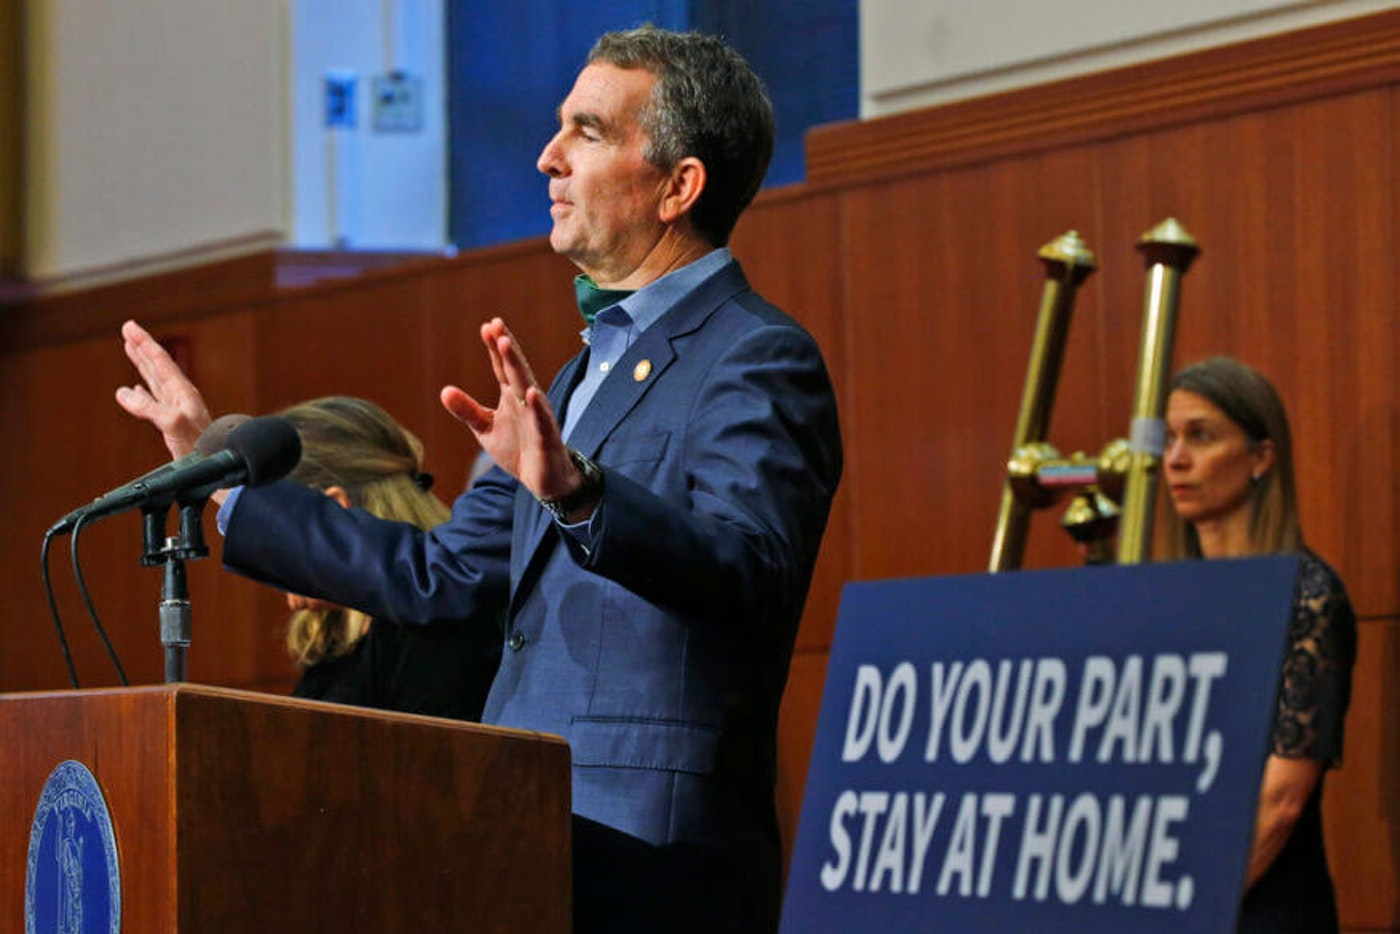 Virginia Gov. Ralph Northam gestures duding a news conference at the Capitol, in Richmond, Va(AP Photo/Steve Helber)